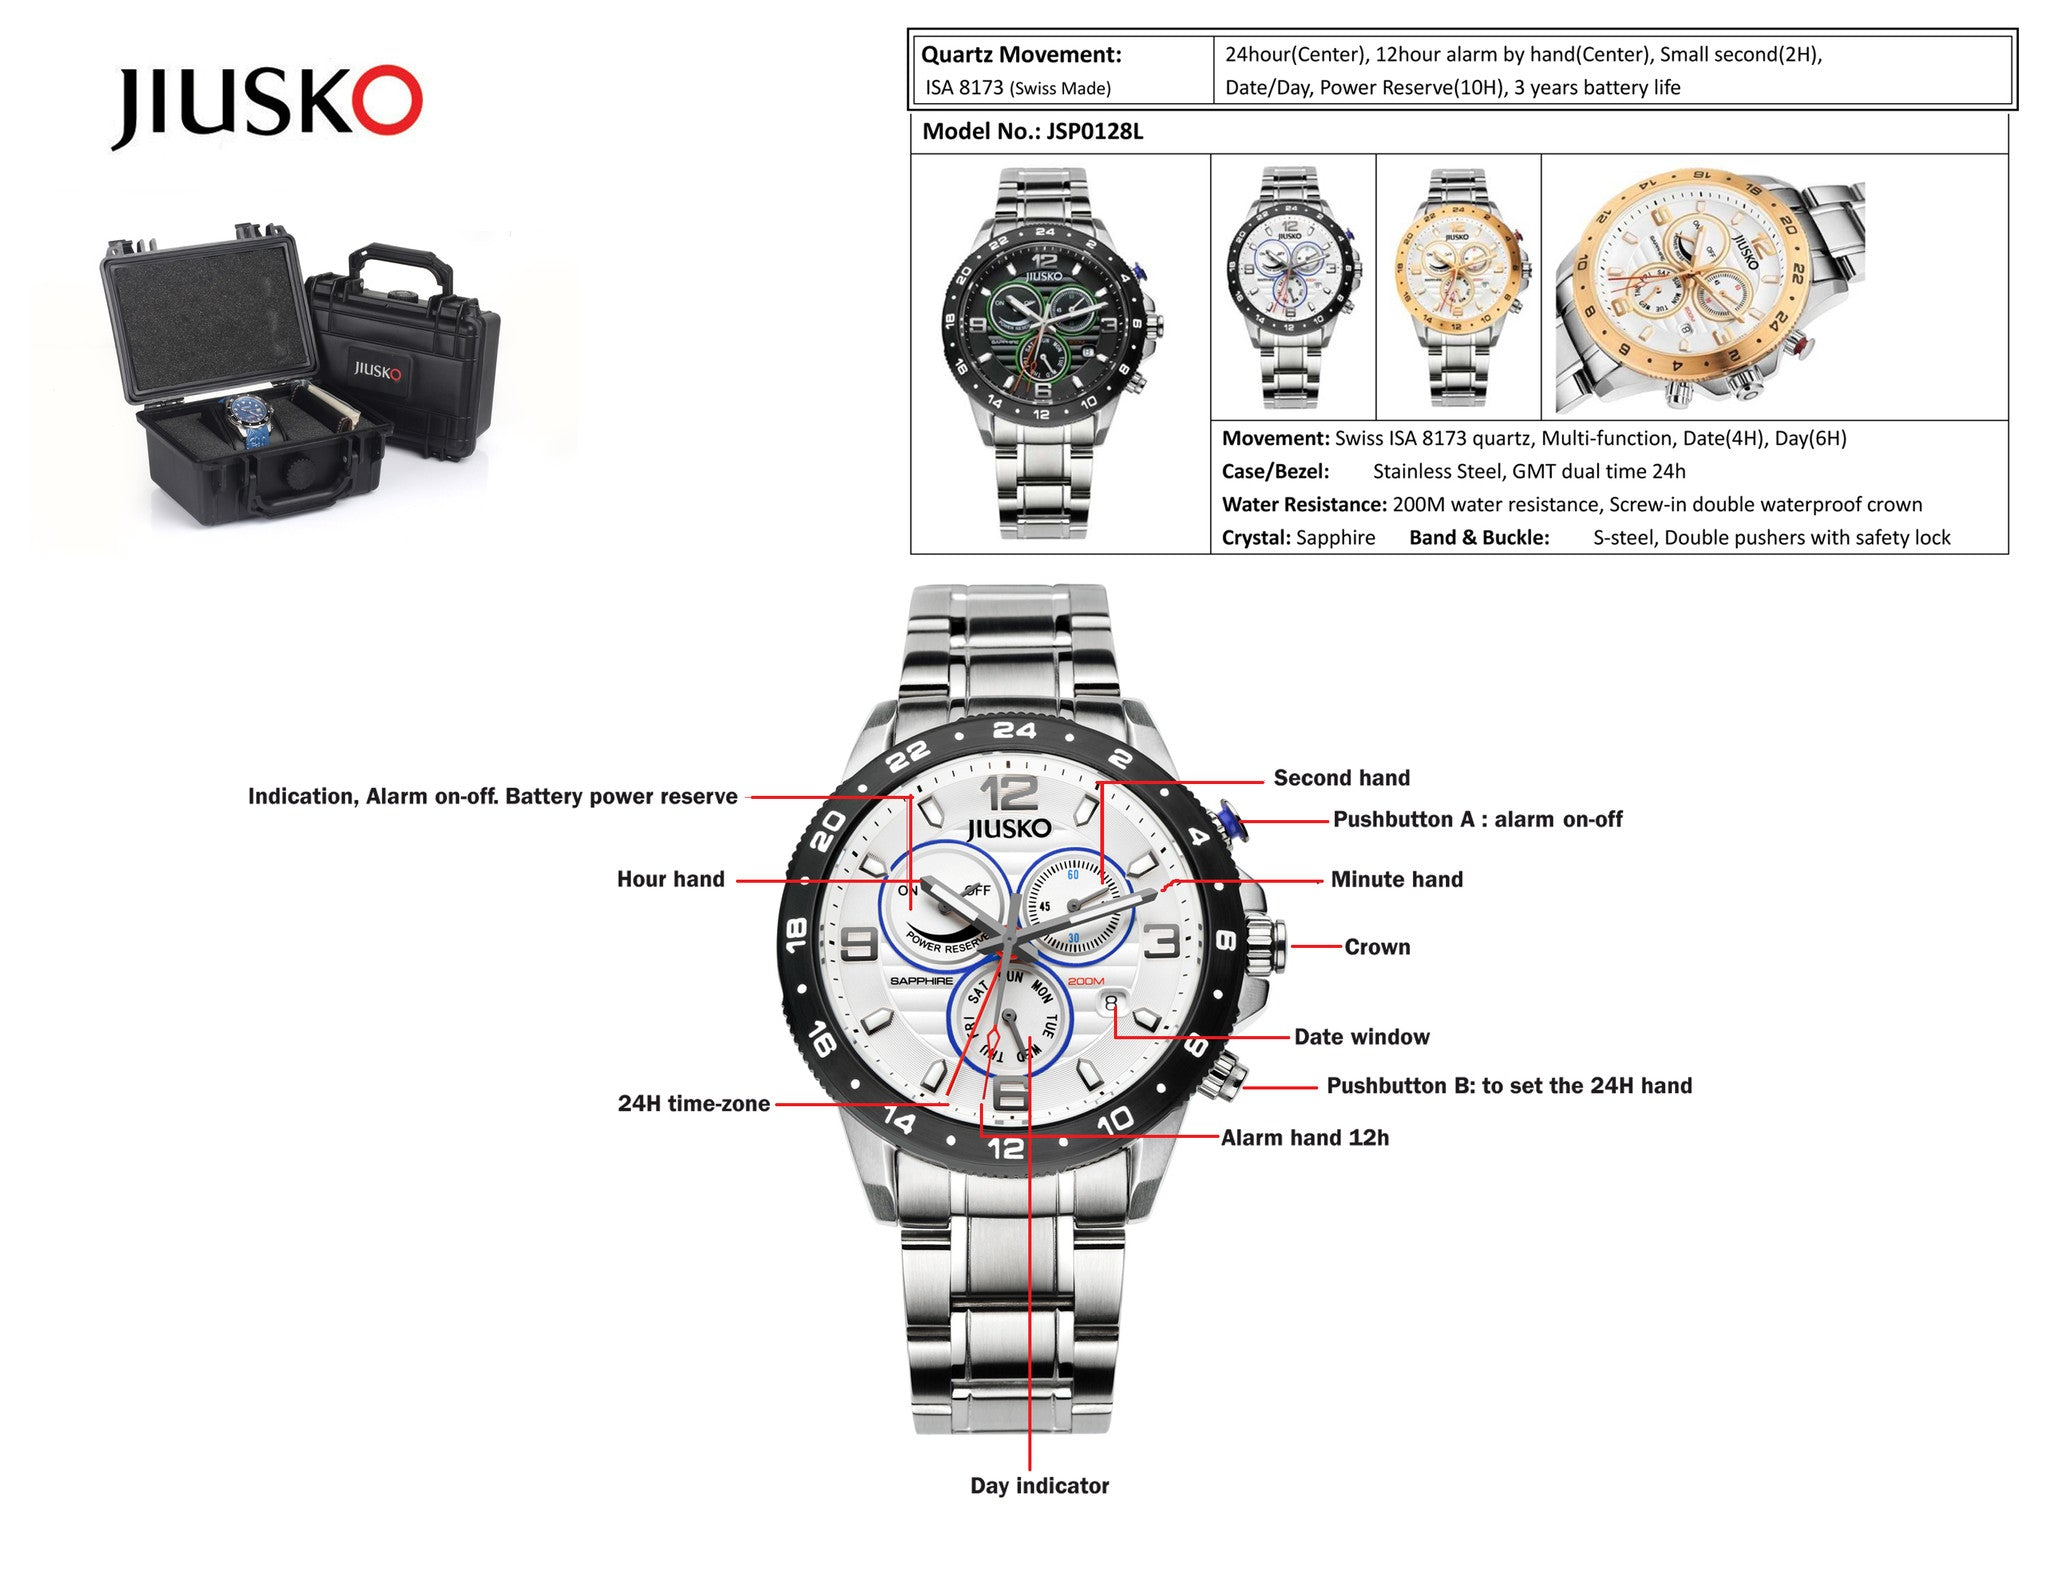 Jiusko Watch,Men's-Dress-Sport-Multi-Function-Quartz-Two Tone Stainless Steel-300mm-128LSRG01